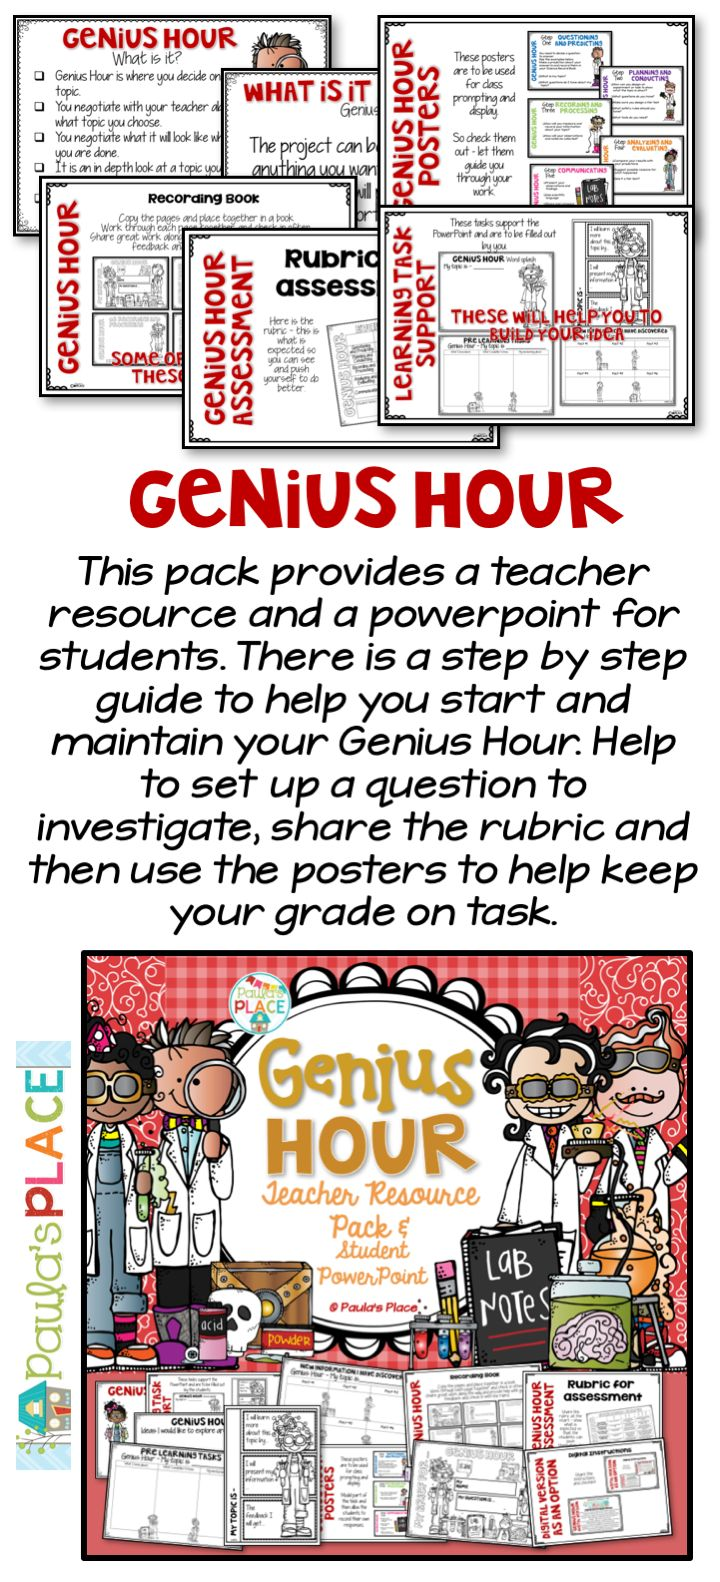 Step by step guide to setting up for a Genius Hour - complete with a Teacher Pack and Student PowerPoint.